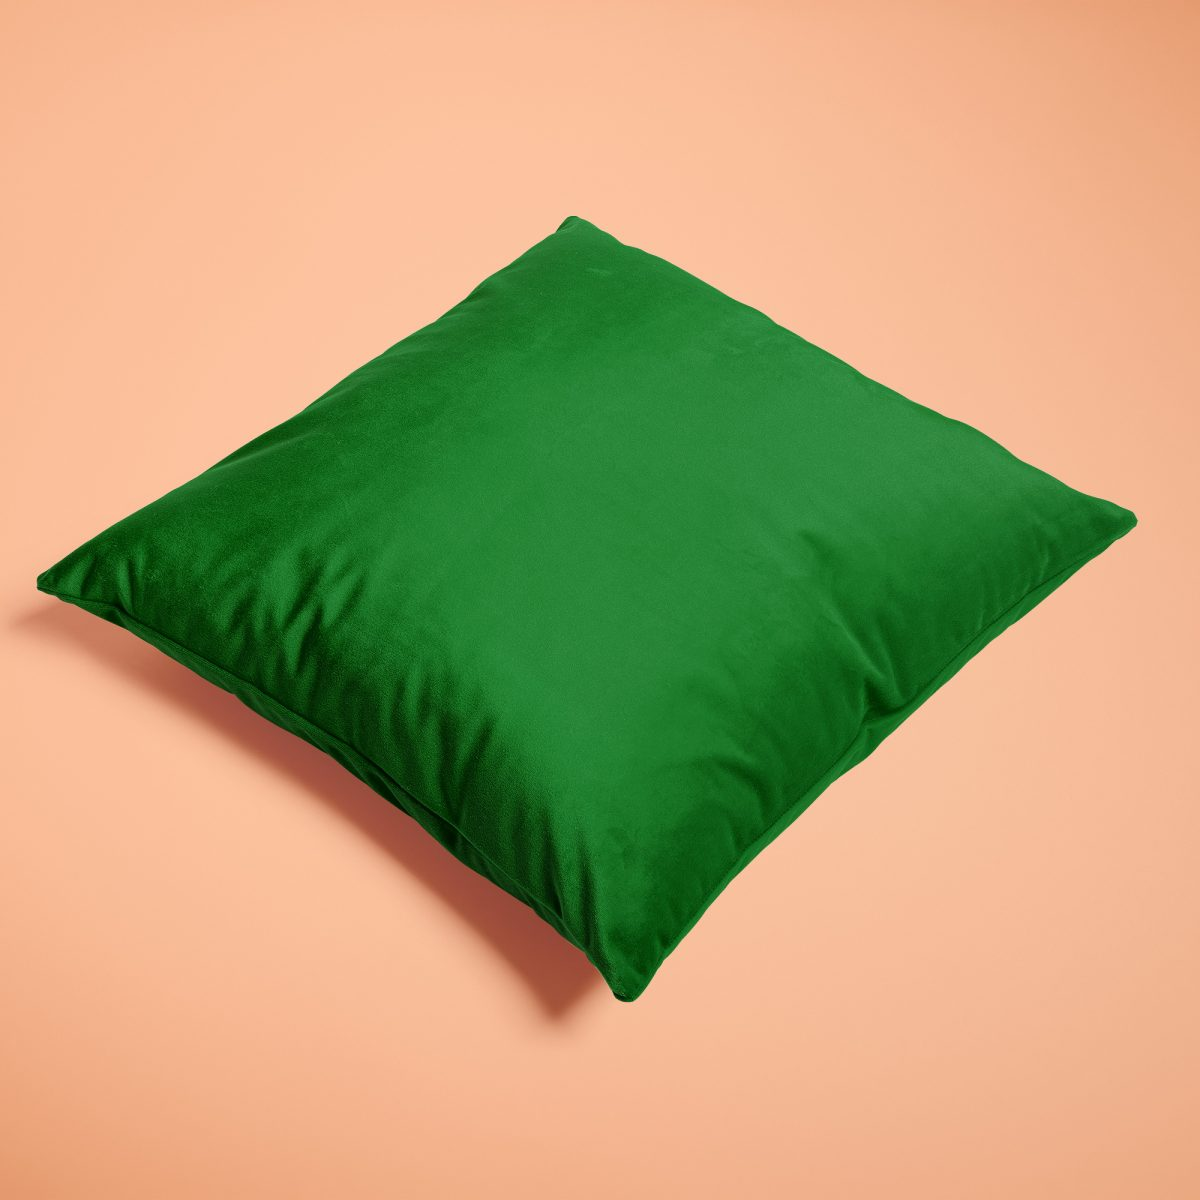 emerald-green-covers-of-the-rainbow-2